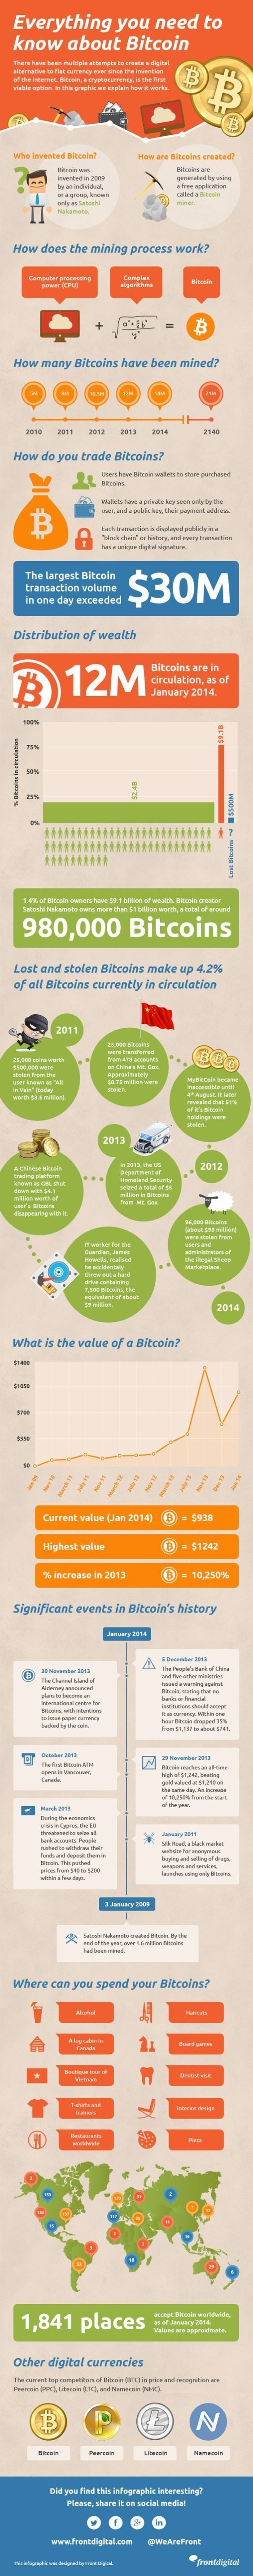 Complete infographic guide about Bitcoin. What is Bitcoin and how can you trade it? What is Bitcoin mining? Learn everything about bitcoin in this infographic. 700 digital coins in the world. None oriented towards actually being used as currency. That all changes now! Save money with retail shopping while investing in the hottest crypto coin ever!